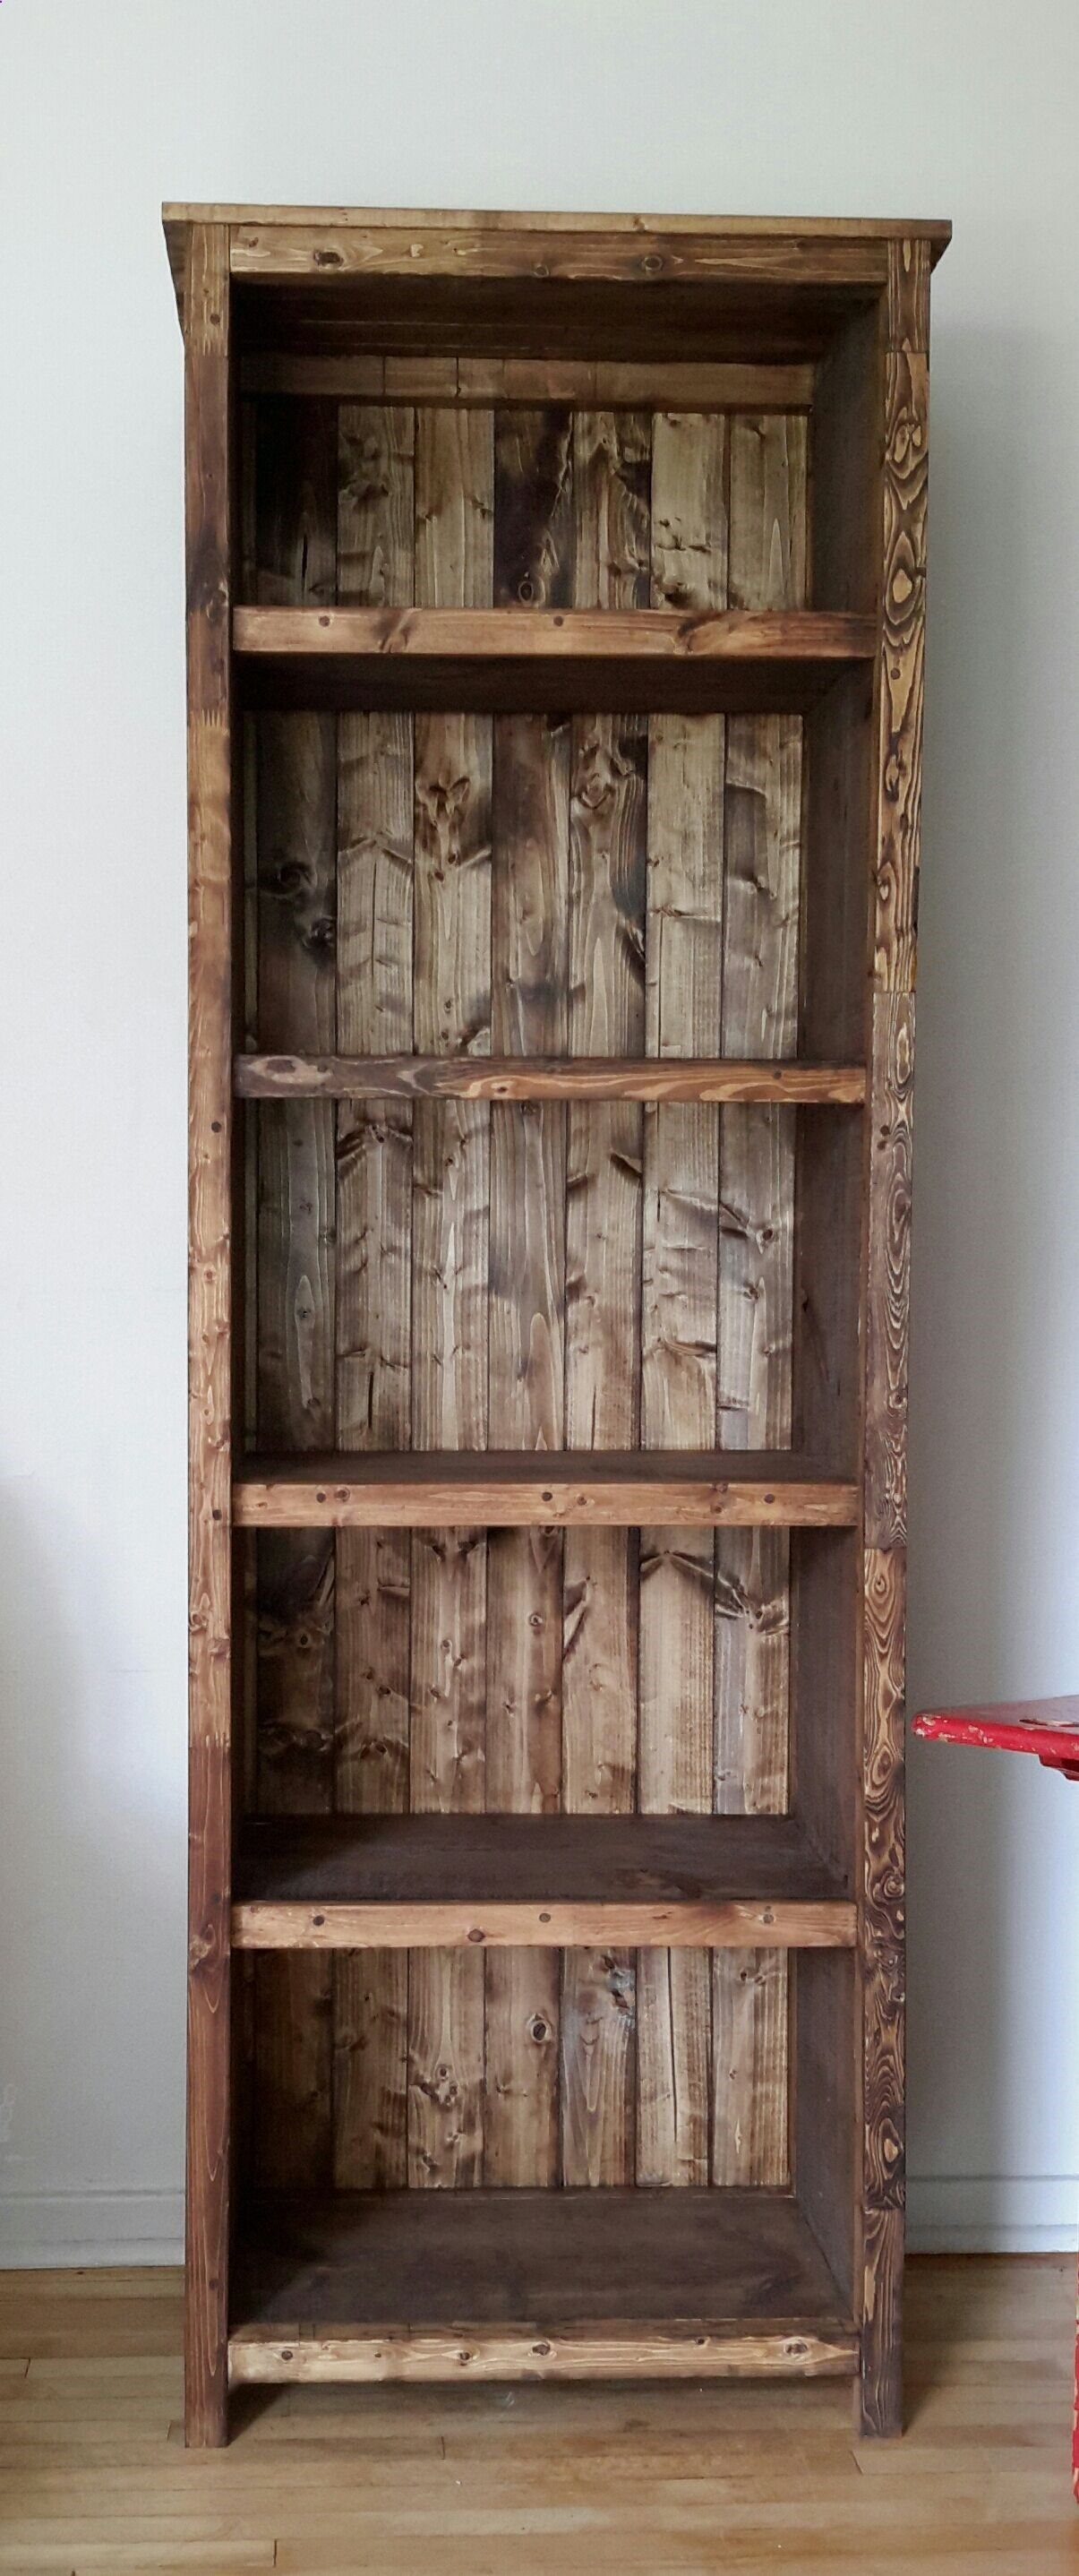 Plans Of Woodworking Diy Projects  Kentwood Bookshelf - Do